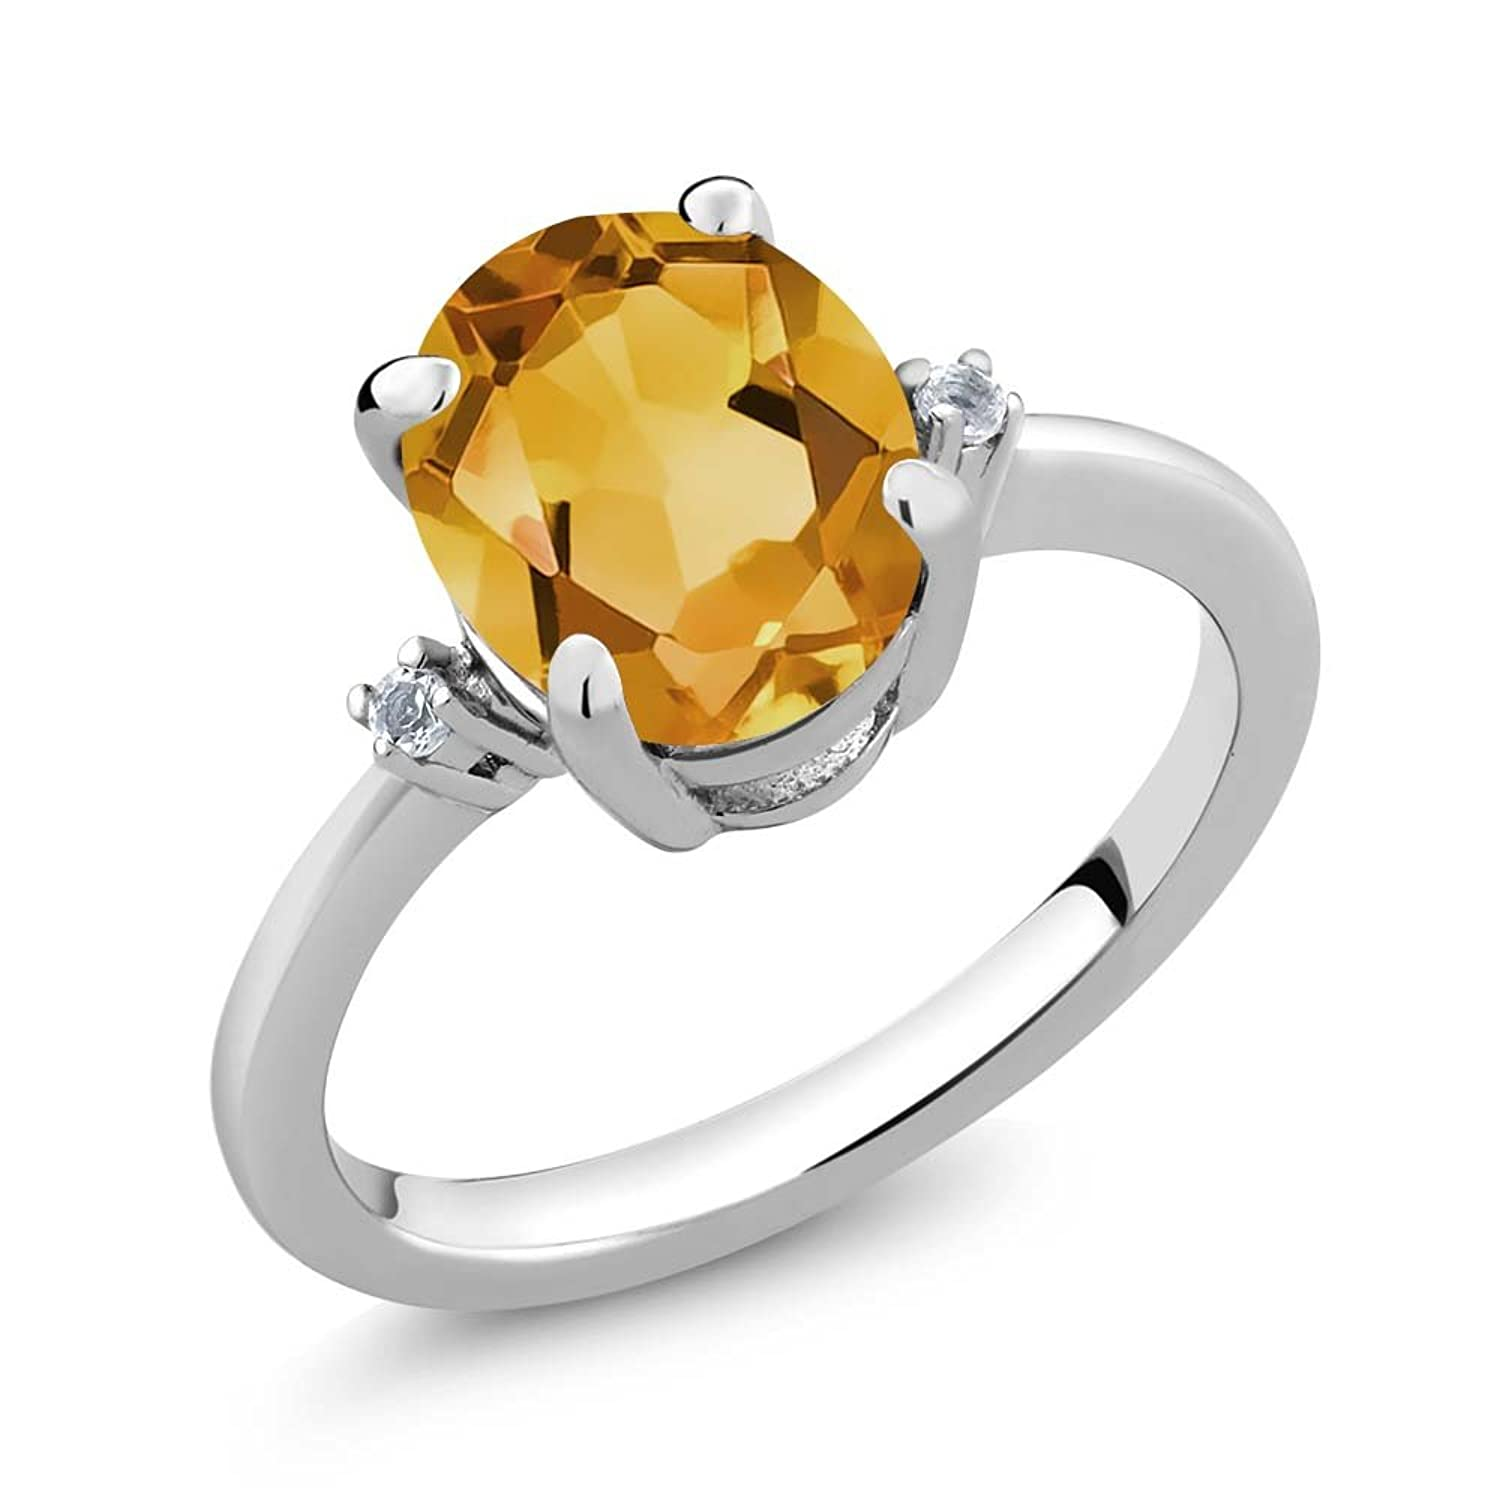 Amazon 2 52 Ct Oval Yellow Citrine & White Topaz Gemstone